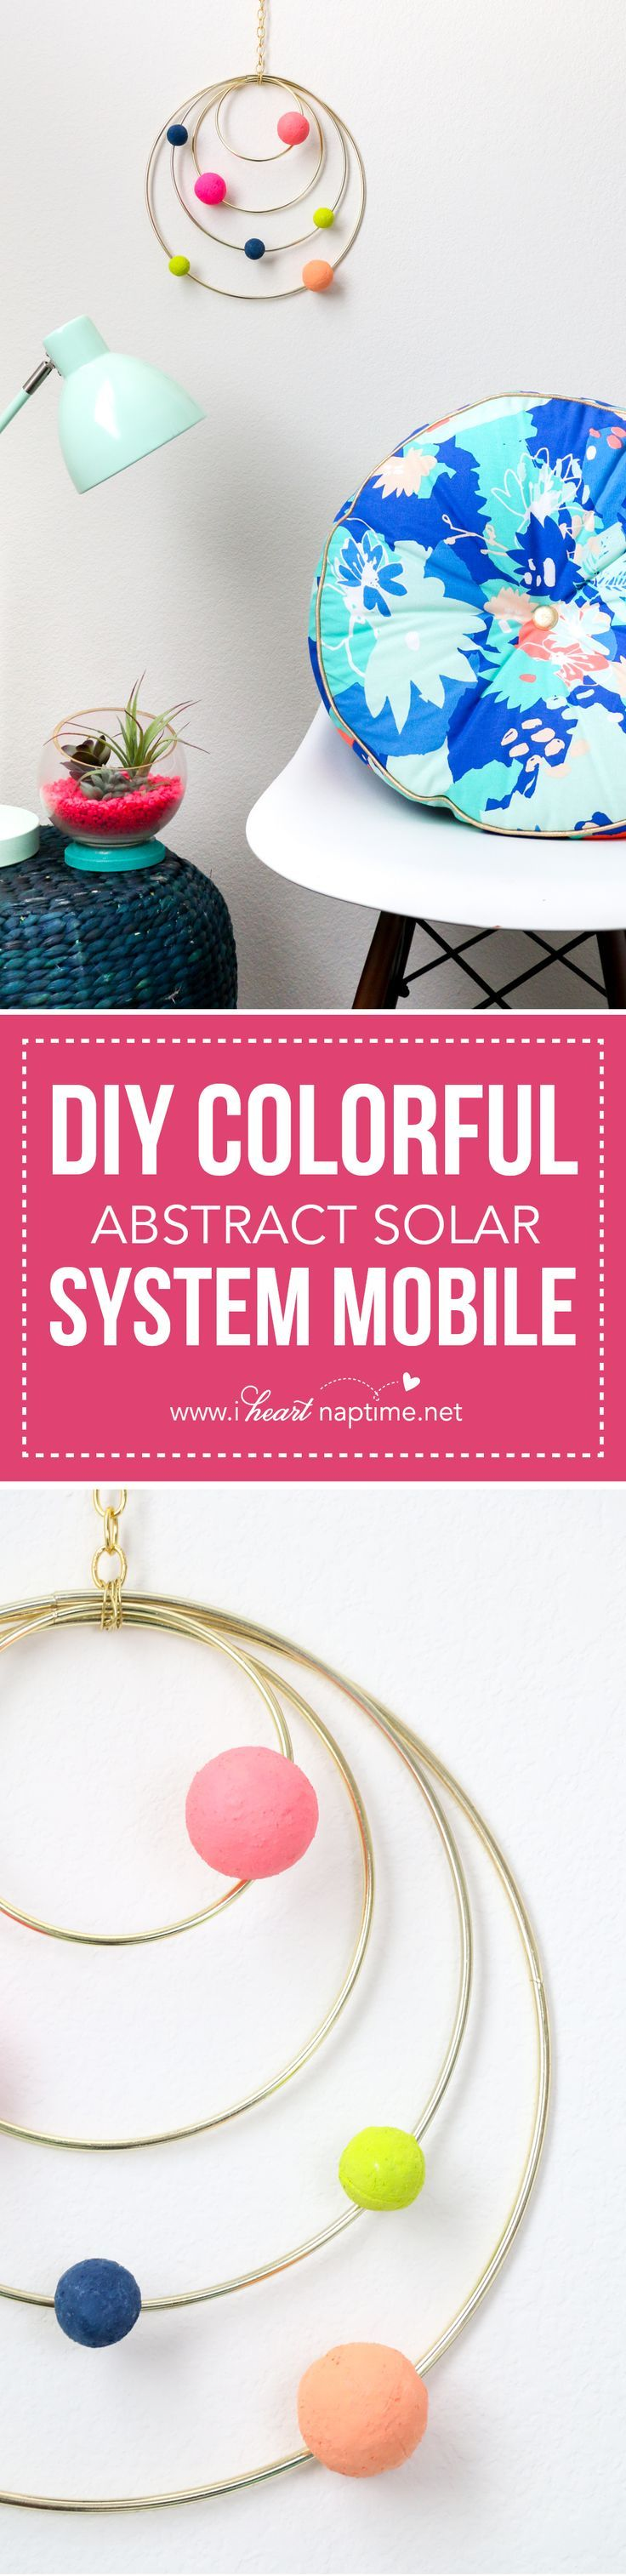 DIY Colorful Abstract Solar System Mobile... a colorful addition to any room! A perfectly fun DIY for anyone!